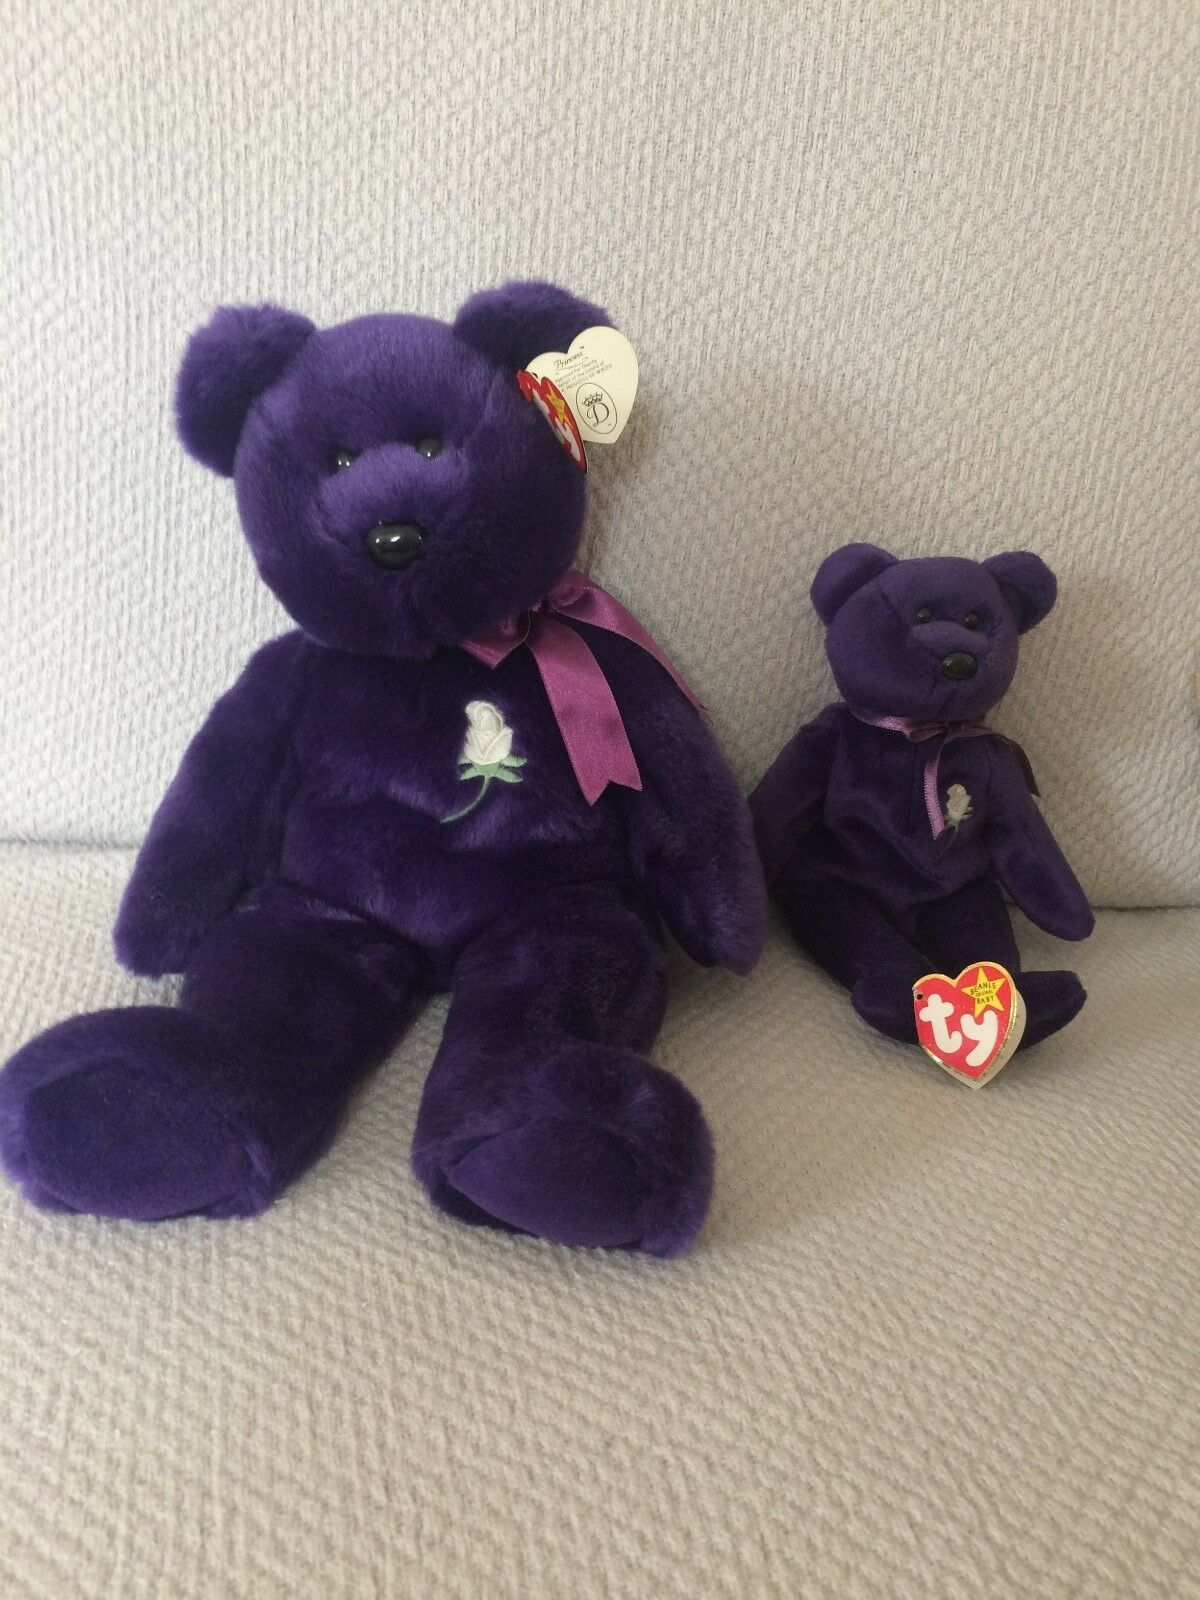 Princess Diana Original TY Beanie Baby and Buddy  New  bought in Europe.